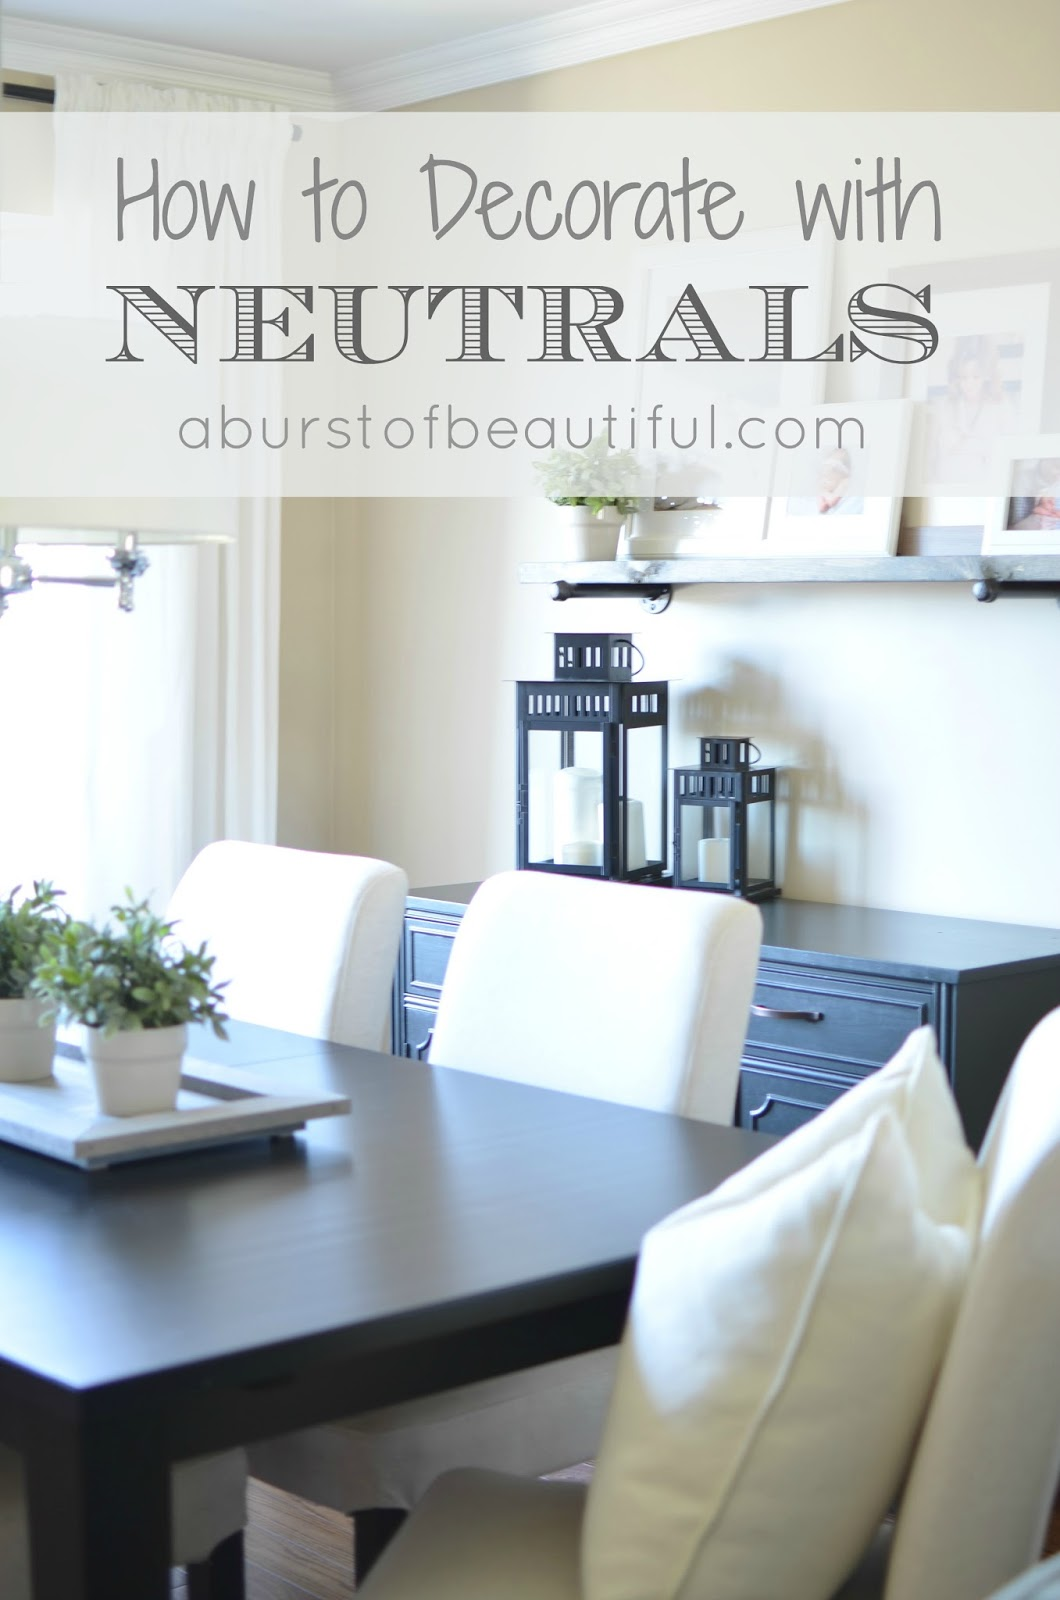 A Burst of Beautiful - How to Decorate with Neutrals